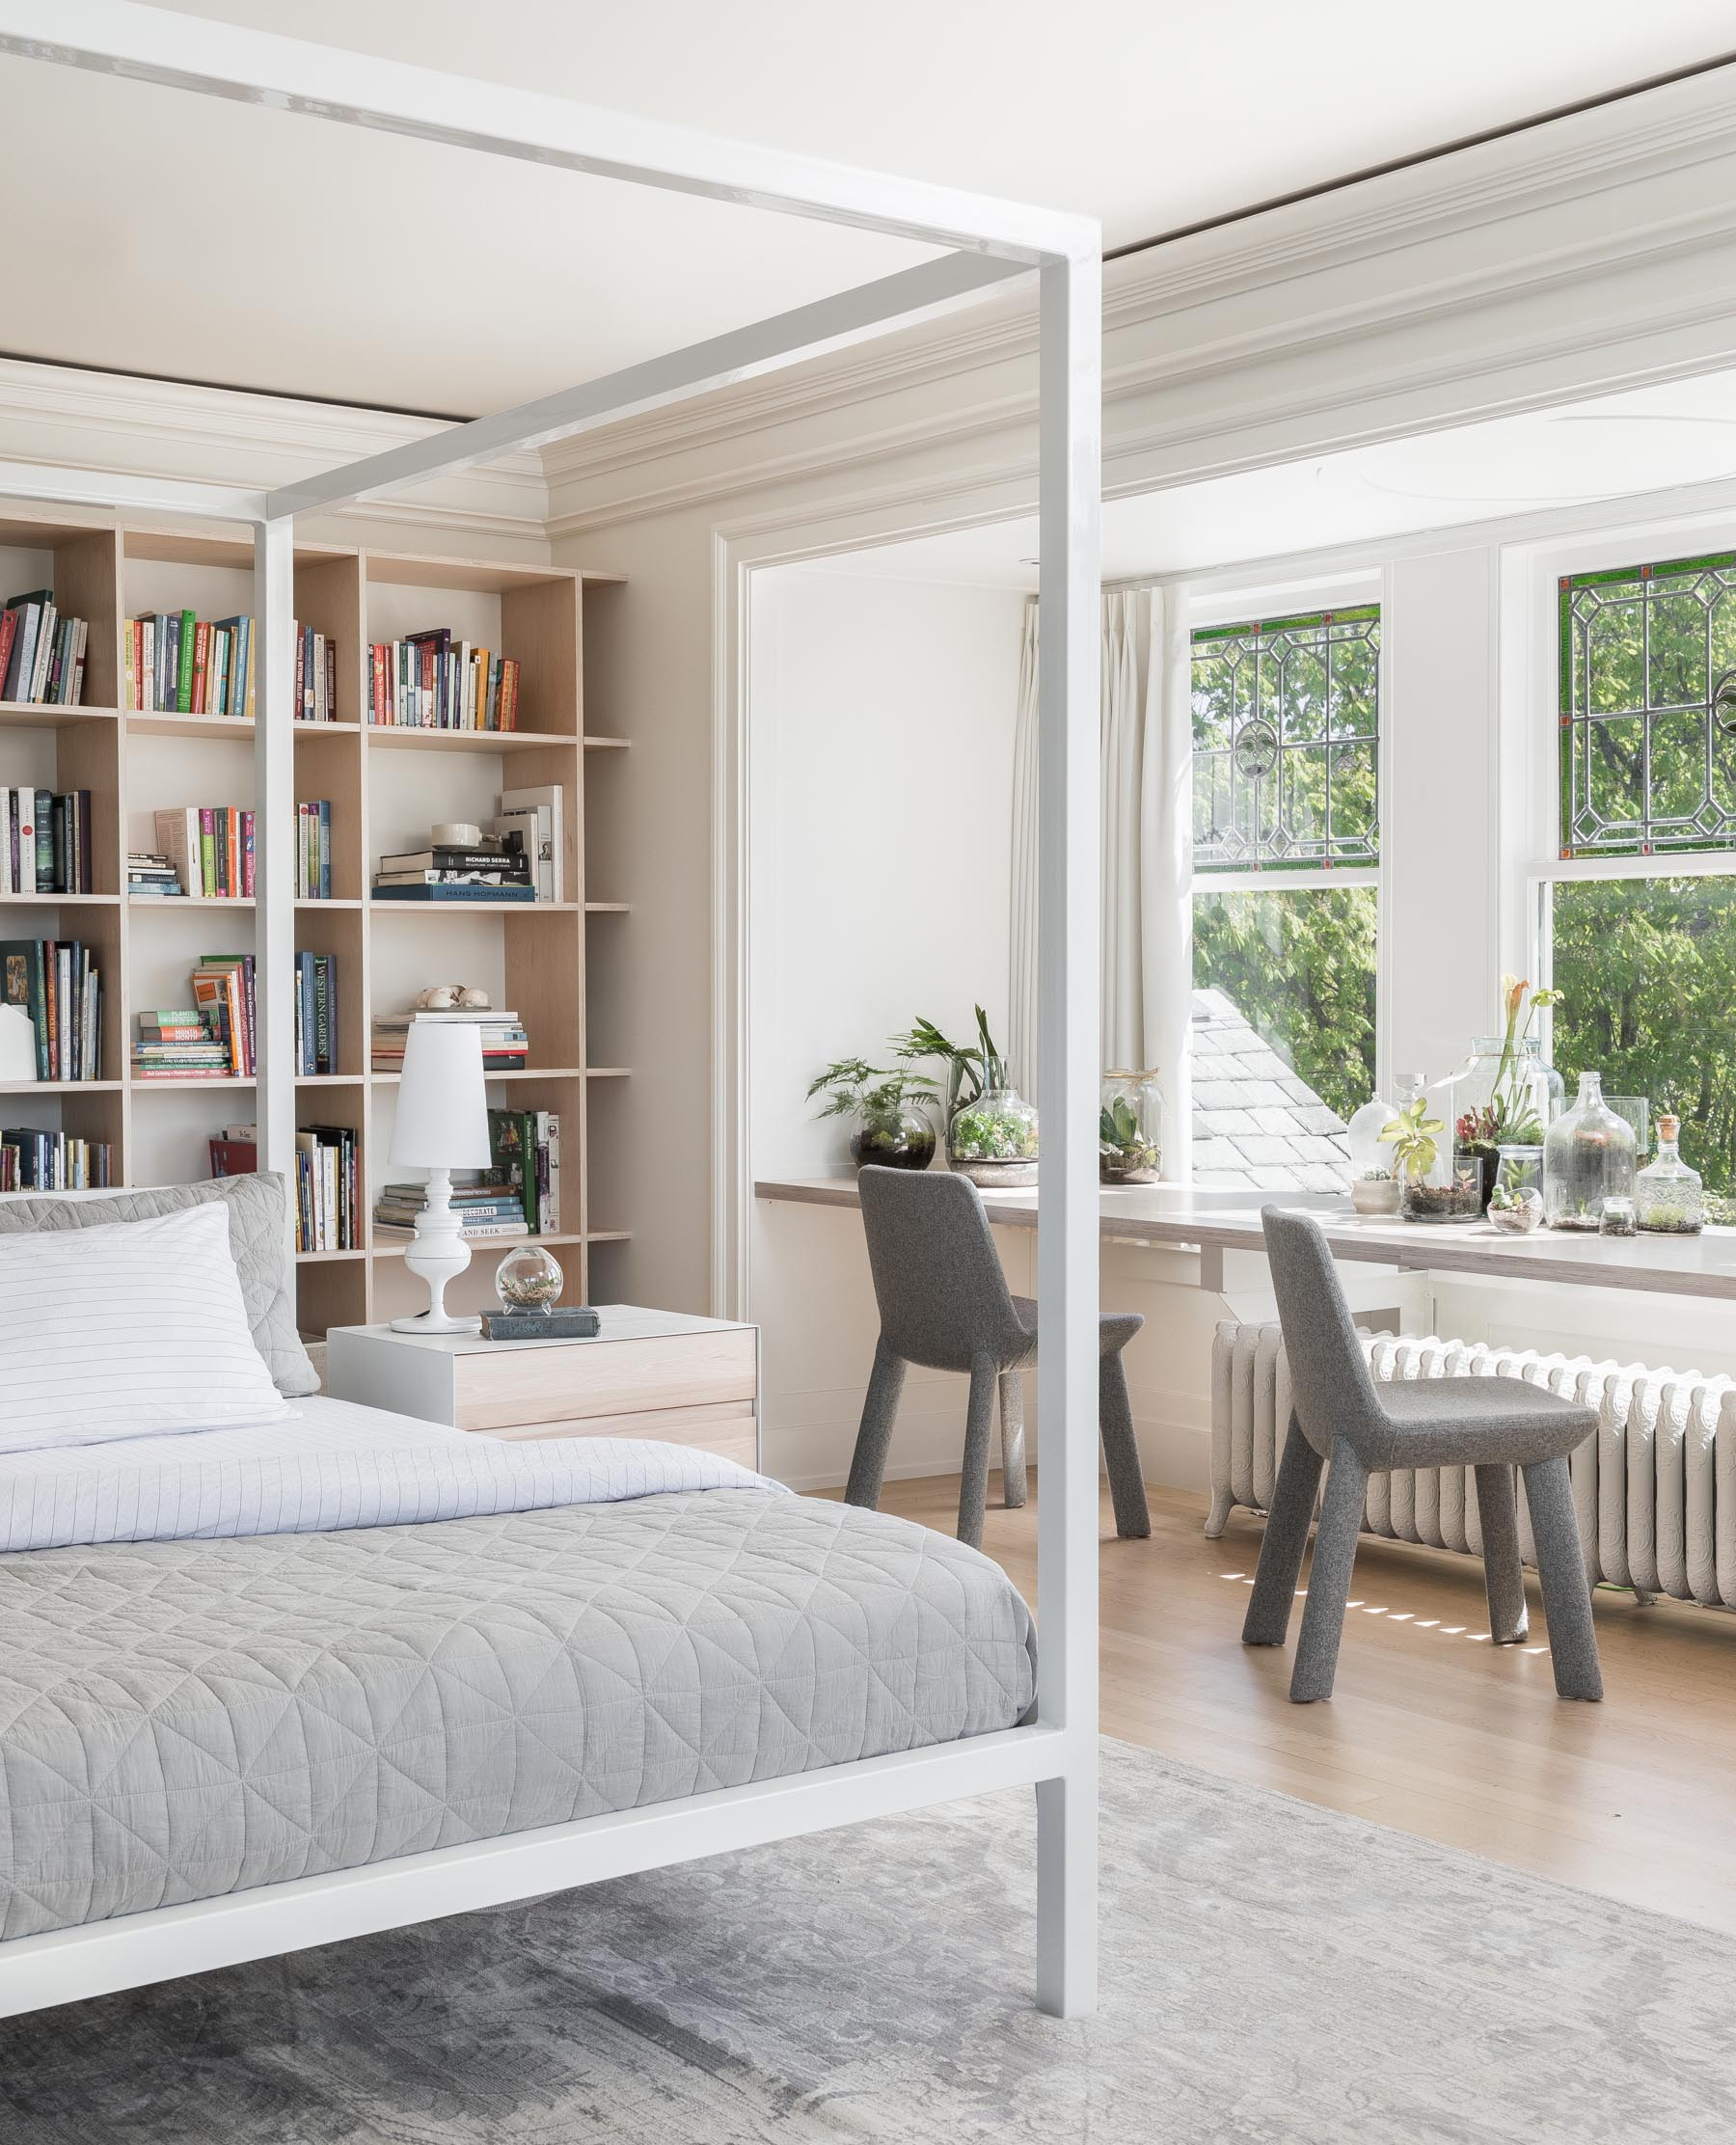 In a modern master bedroom, a wood desk spans the width of the windows, and provides a place for two to sit at.